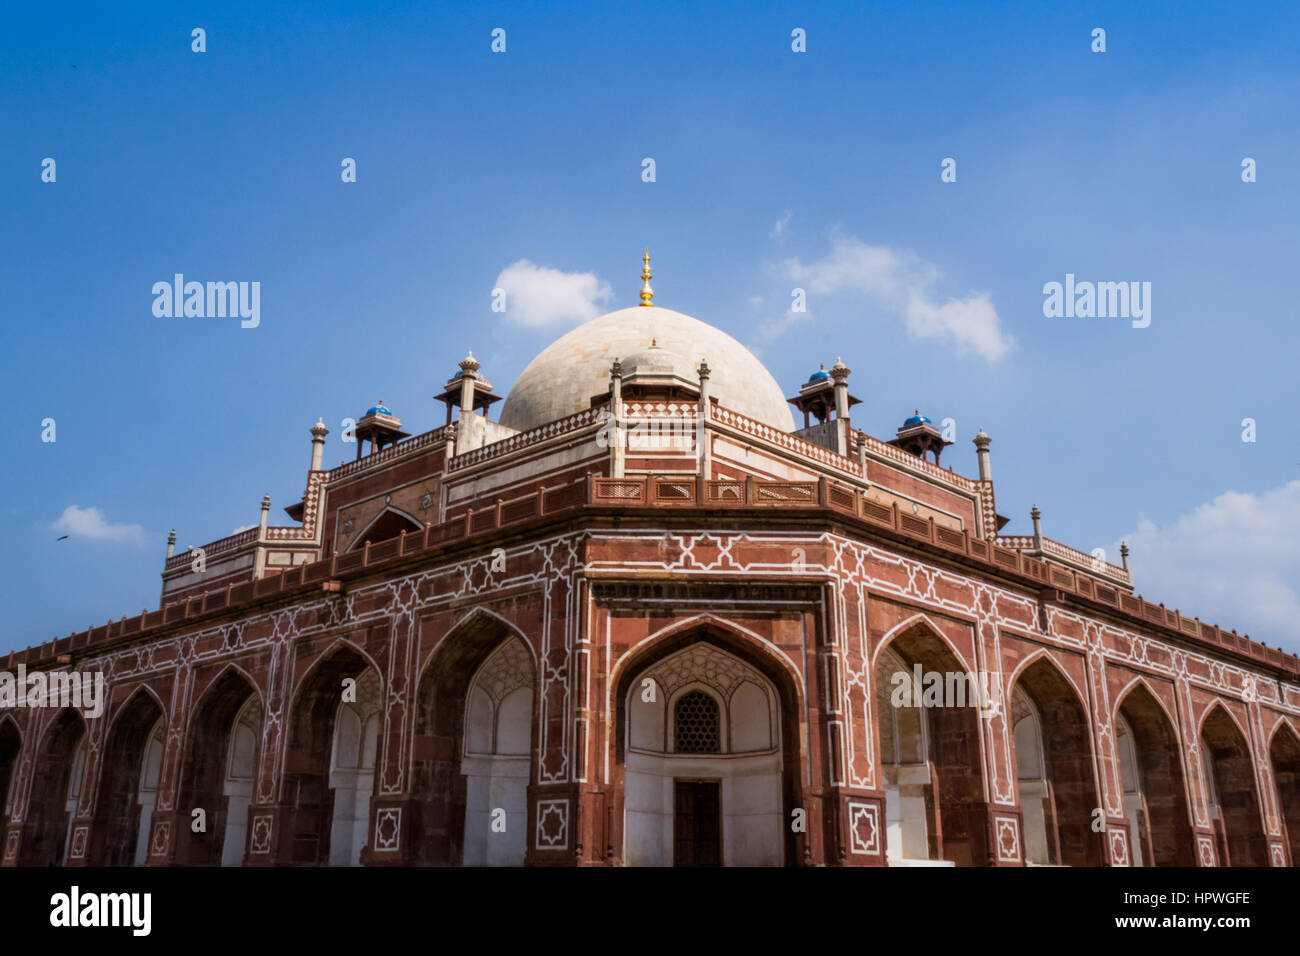 Frontal view of Humayun's Tomb,  UNESCO World Heritage Centre, Delhi - Stock Image